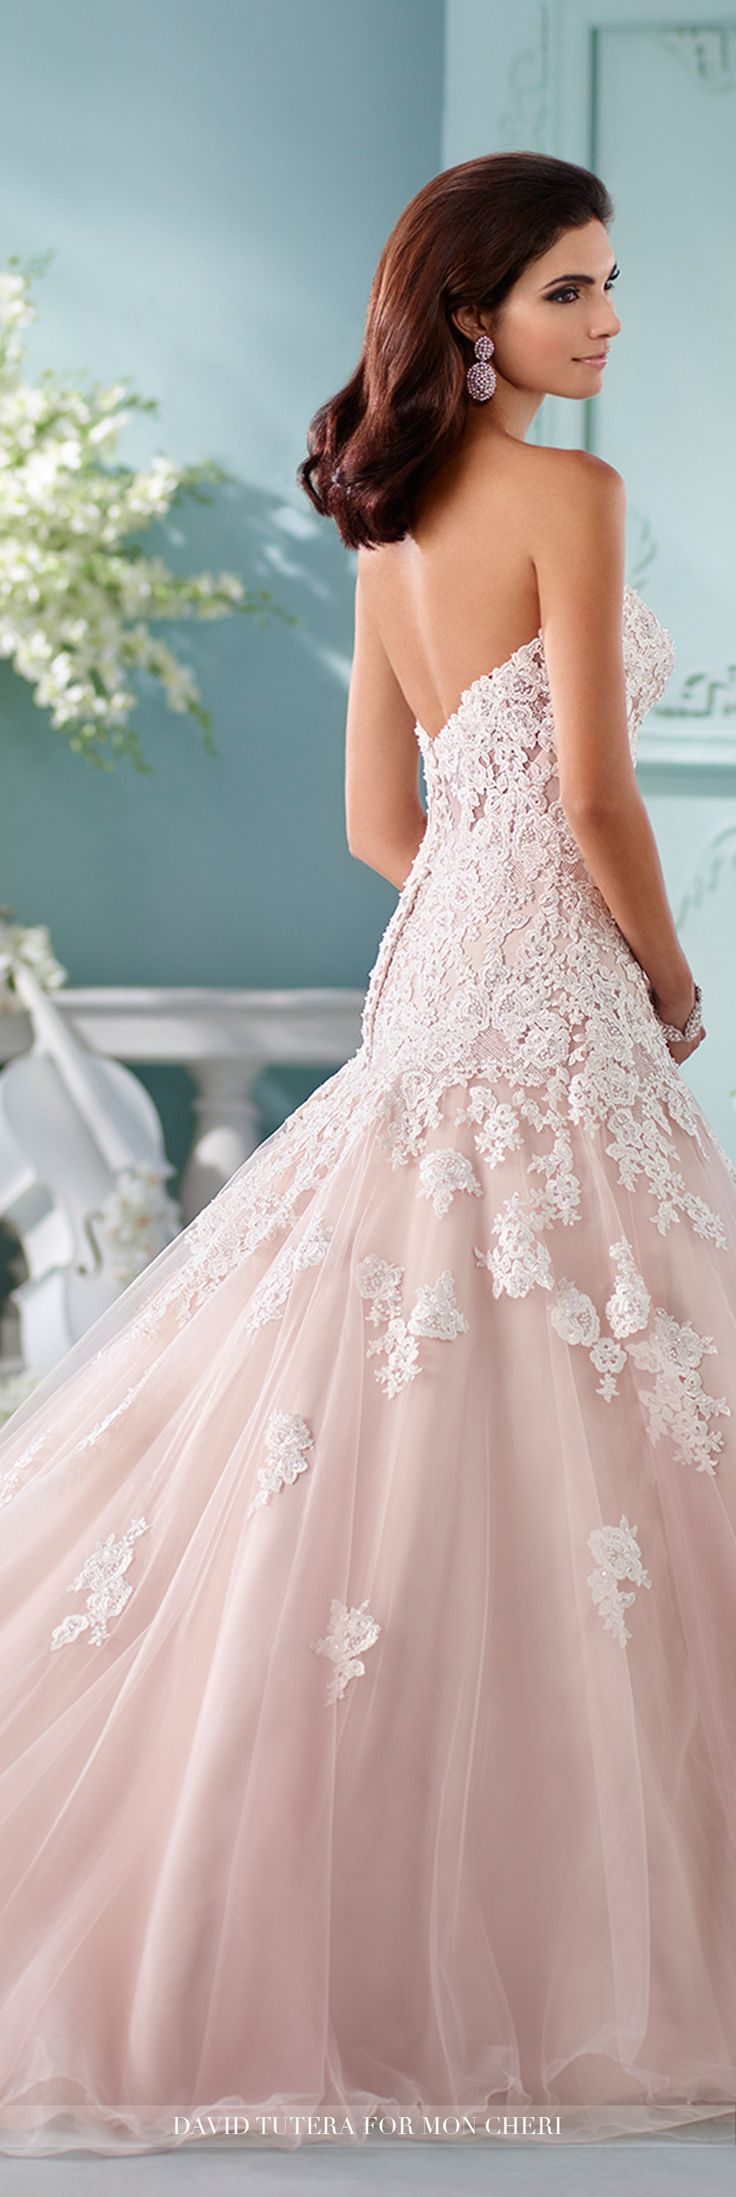 pink wedding dresses fuchsia wedding dress 25 Best Ideas about Pink Wedding Dresses on Pinterest Princess gowns Fancy gowns and Princess dresses